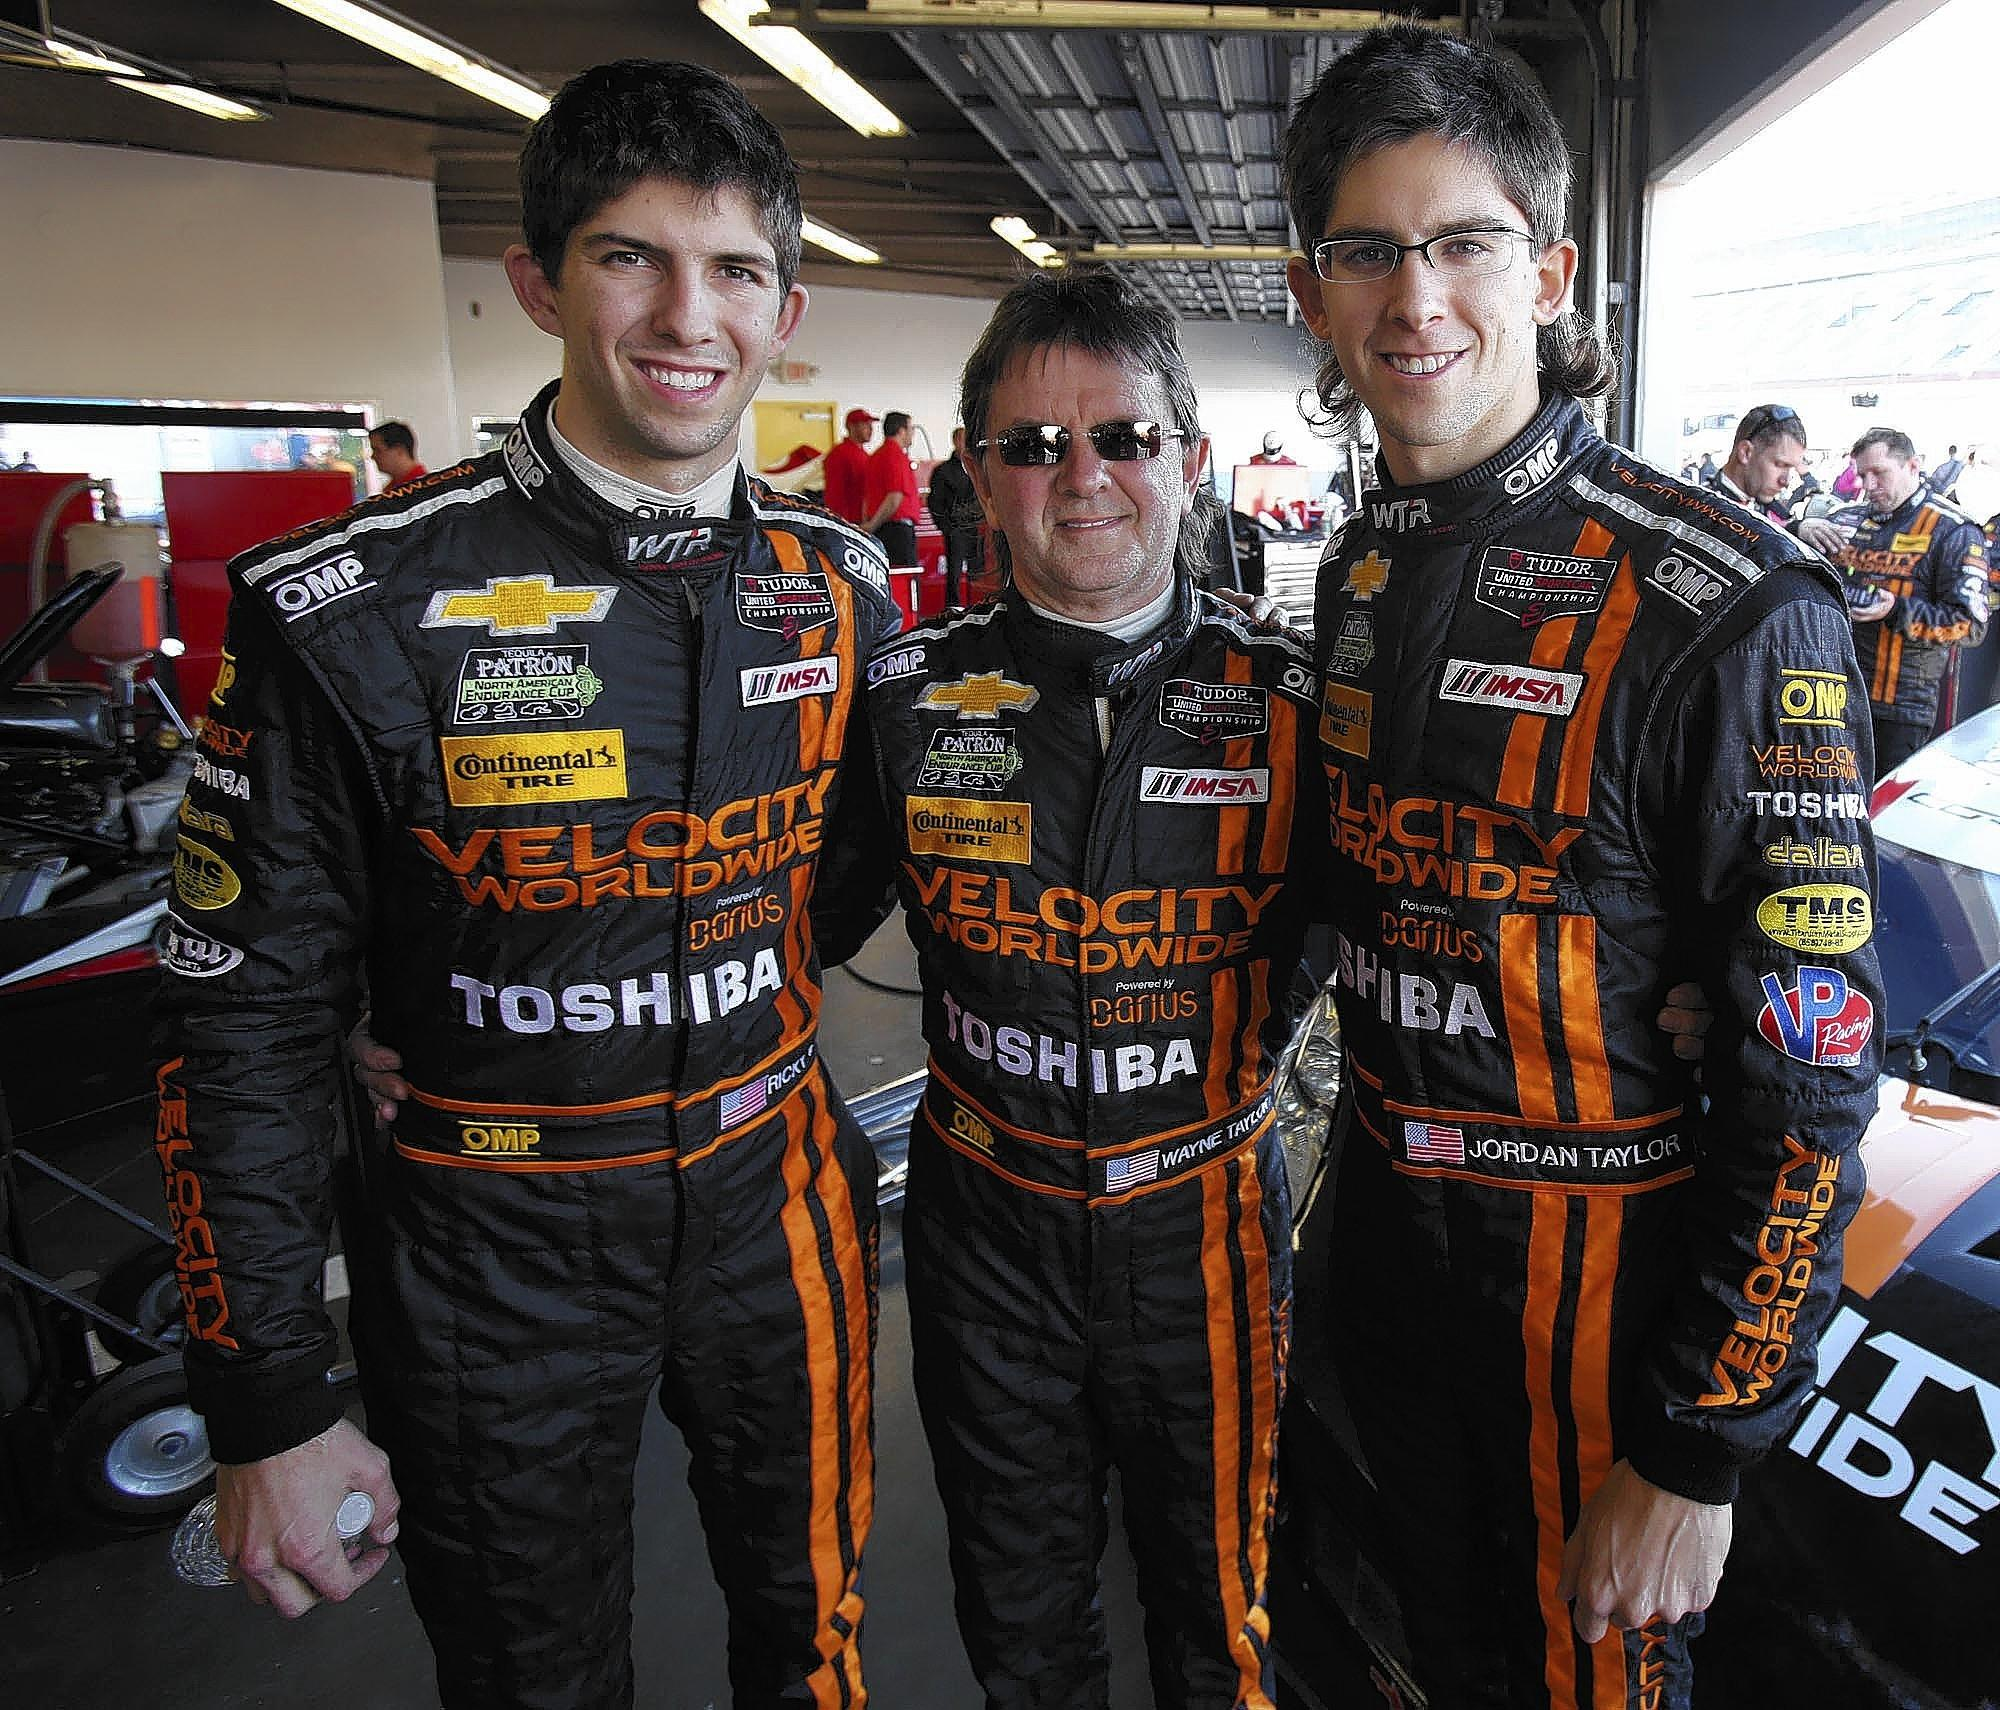 Wayne Taylor, middle, is pictured with his sons, Ricky, left, and Jordan in the garage area before qualifying for the Rolex 24 at Daytona International Speedway on Thursday.